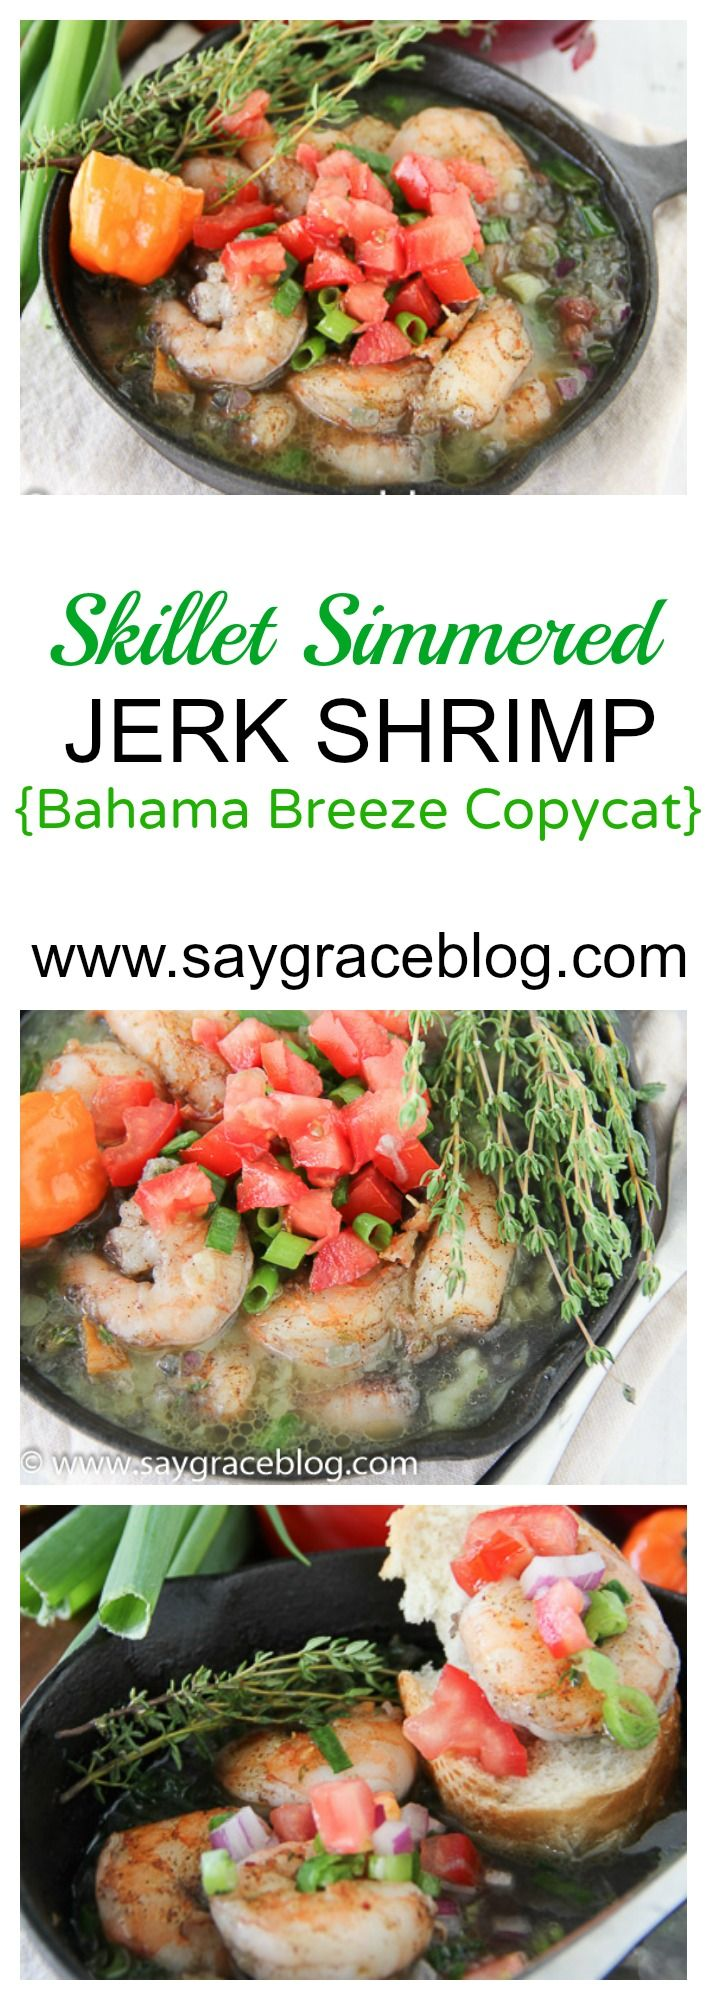 This Bahama Breeze copycat fire roasted jerk shrimp dish is simmered in a delicious garlic-thyme butter and served with crusty French bread for sopping!